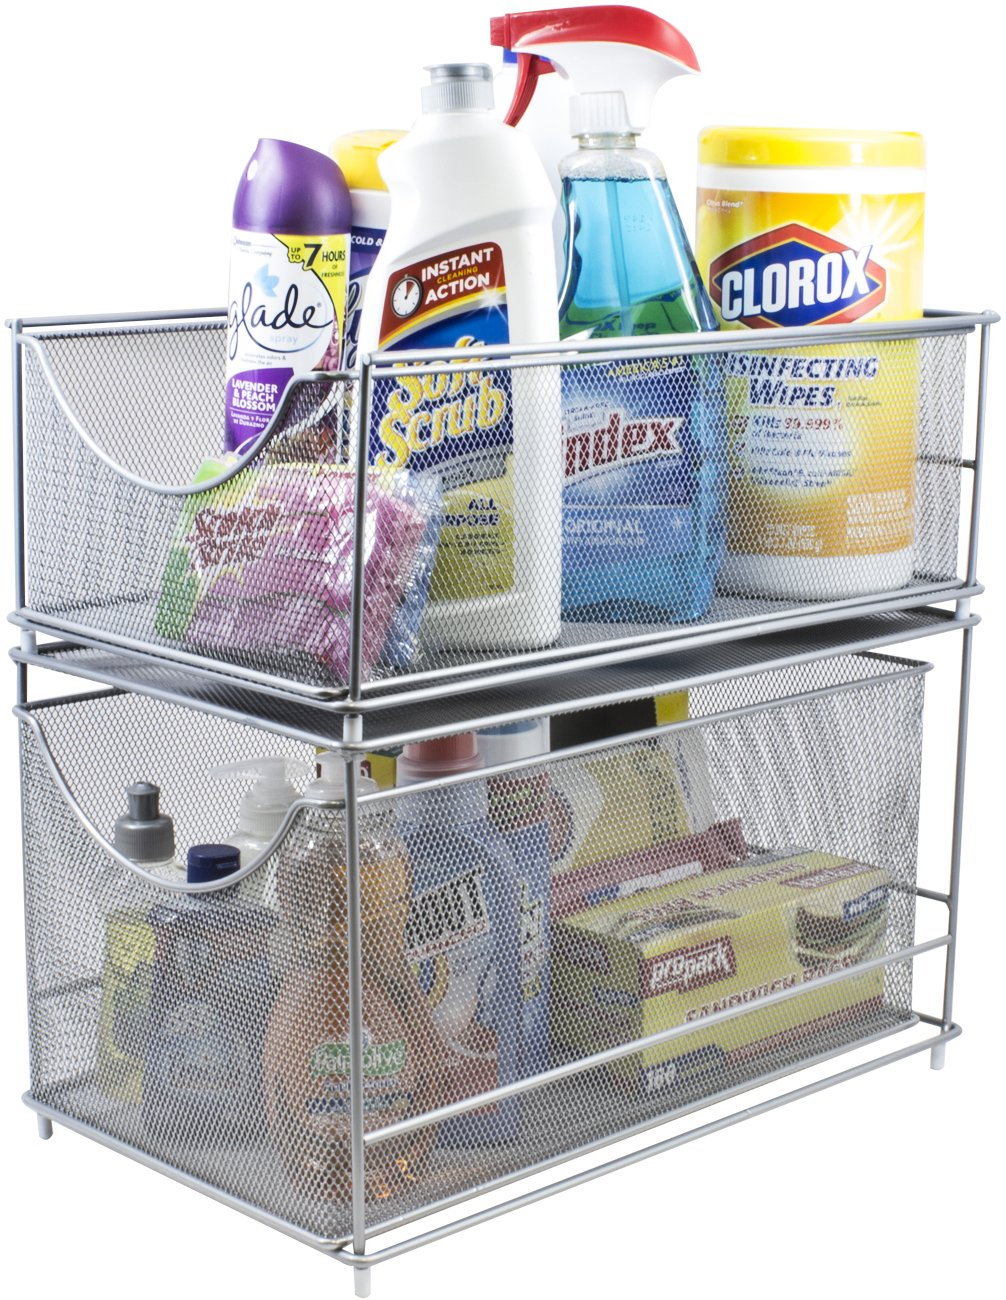 Sorbus Cabinet Organizer Set -Mesh Storage Organizer with Pull Out Drawers-Ideal for Countertop, Cabinet, Pantry, Under the Sink, Desktop and More (Silver Two-Piece Set) by Sorbus